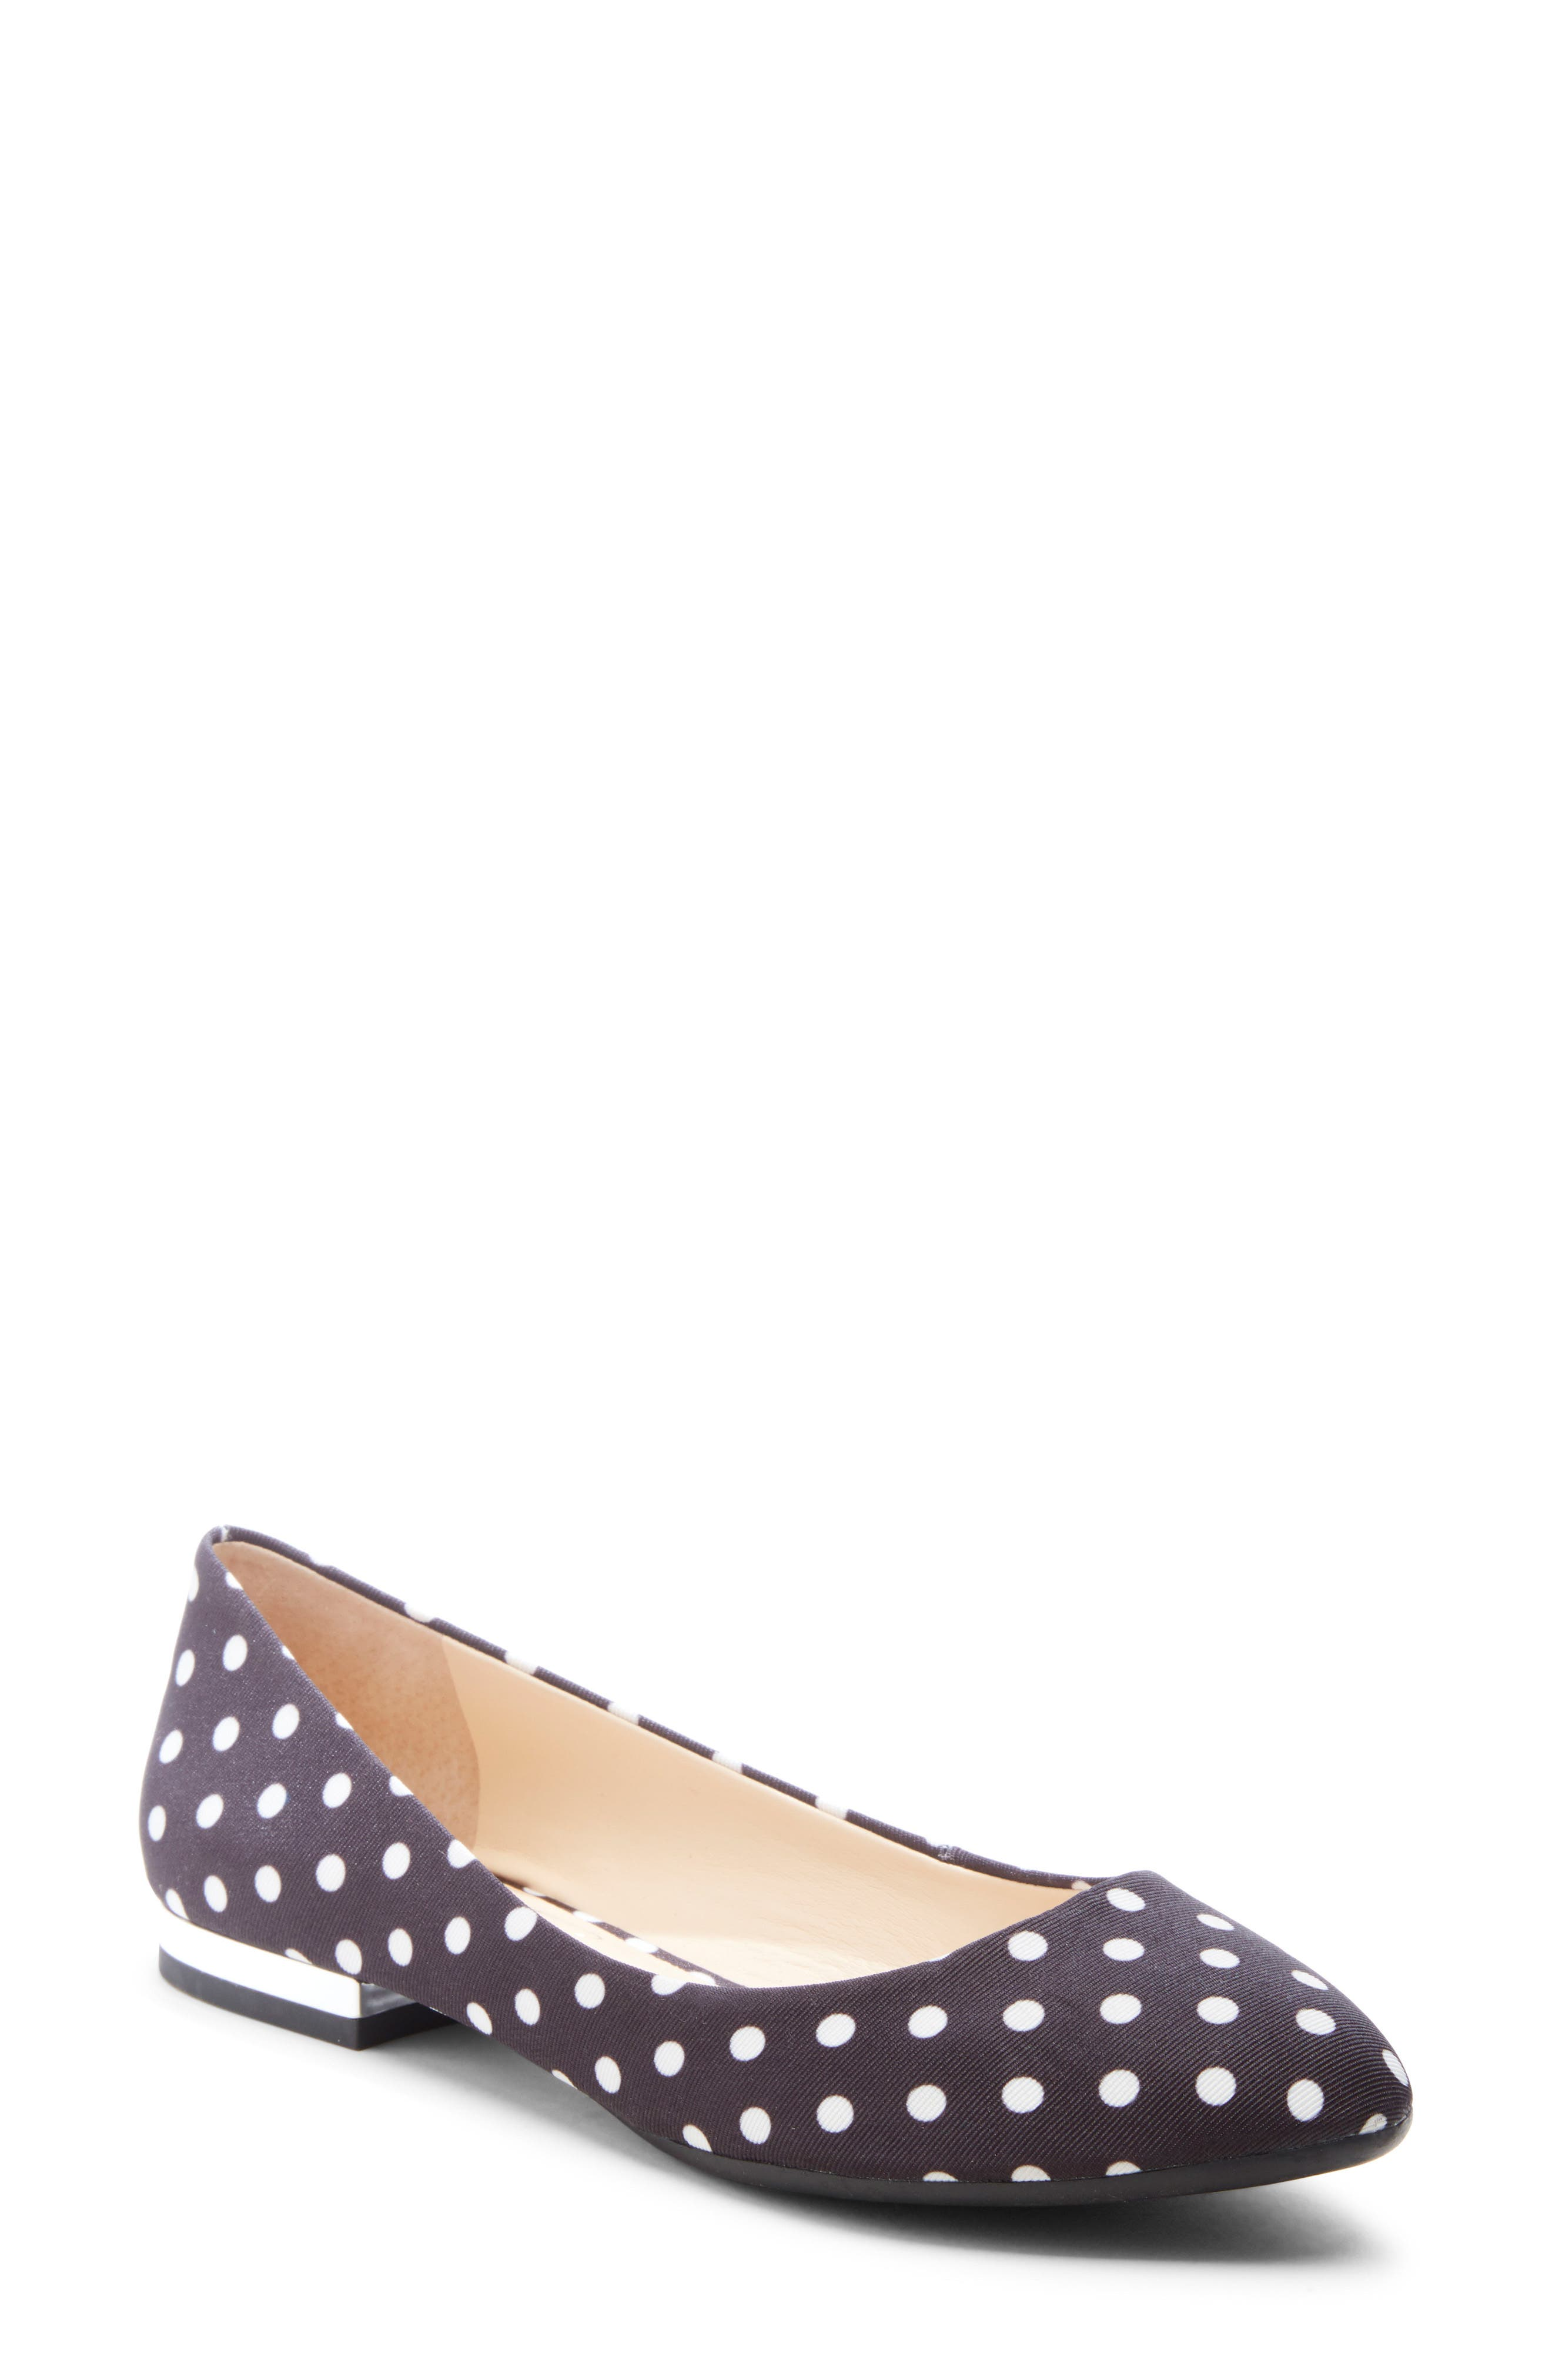 Jessica Simpson Ginly Ballet Flat- Black